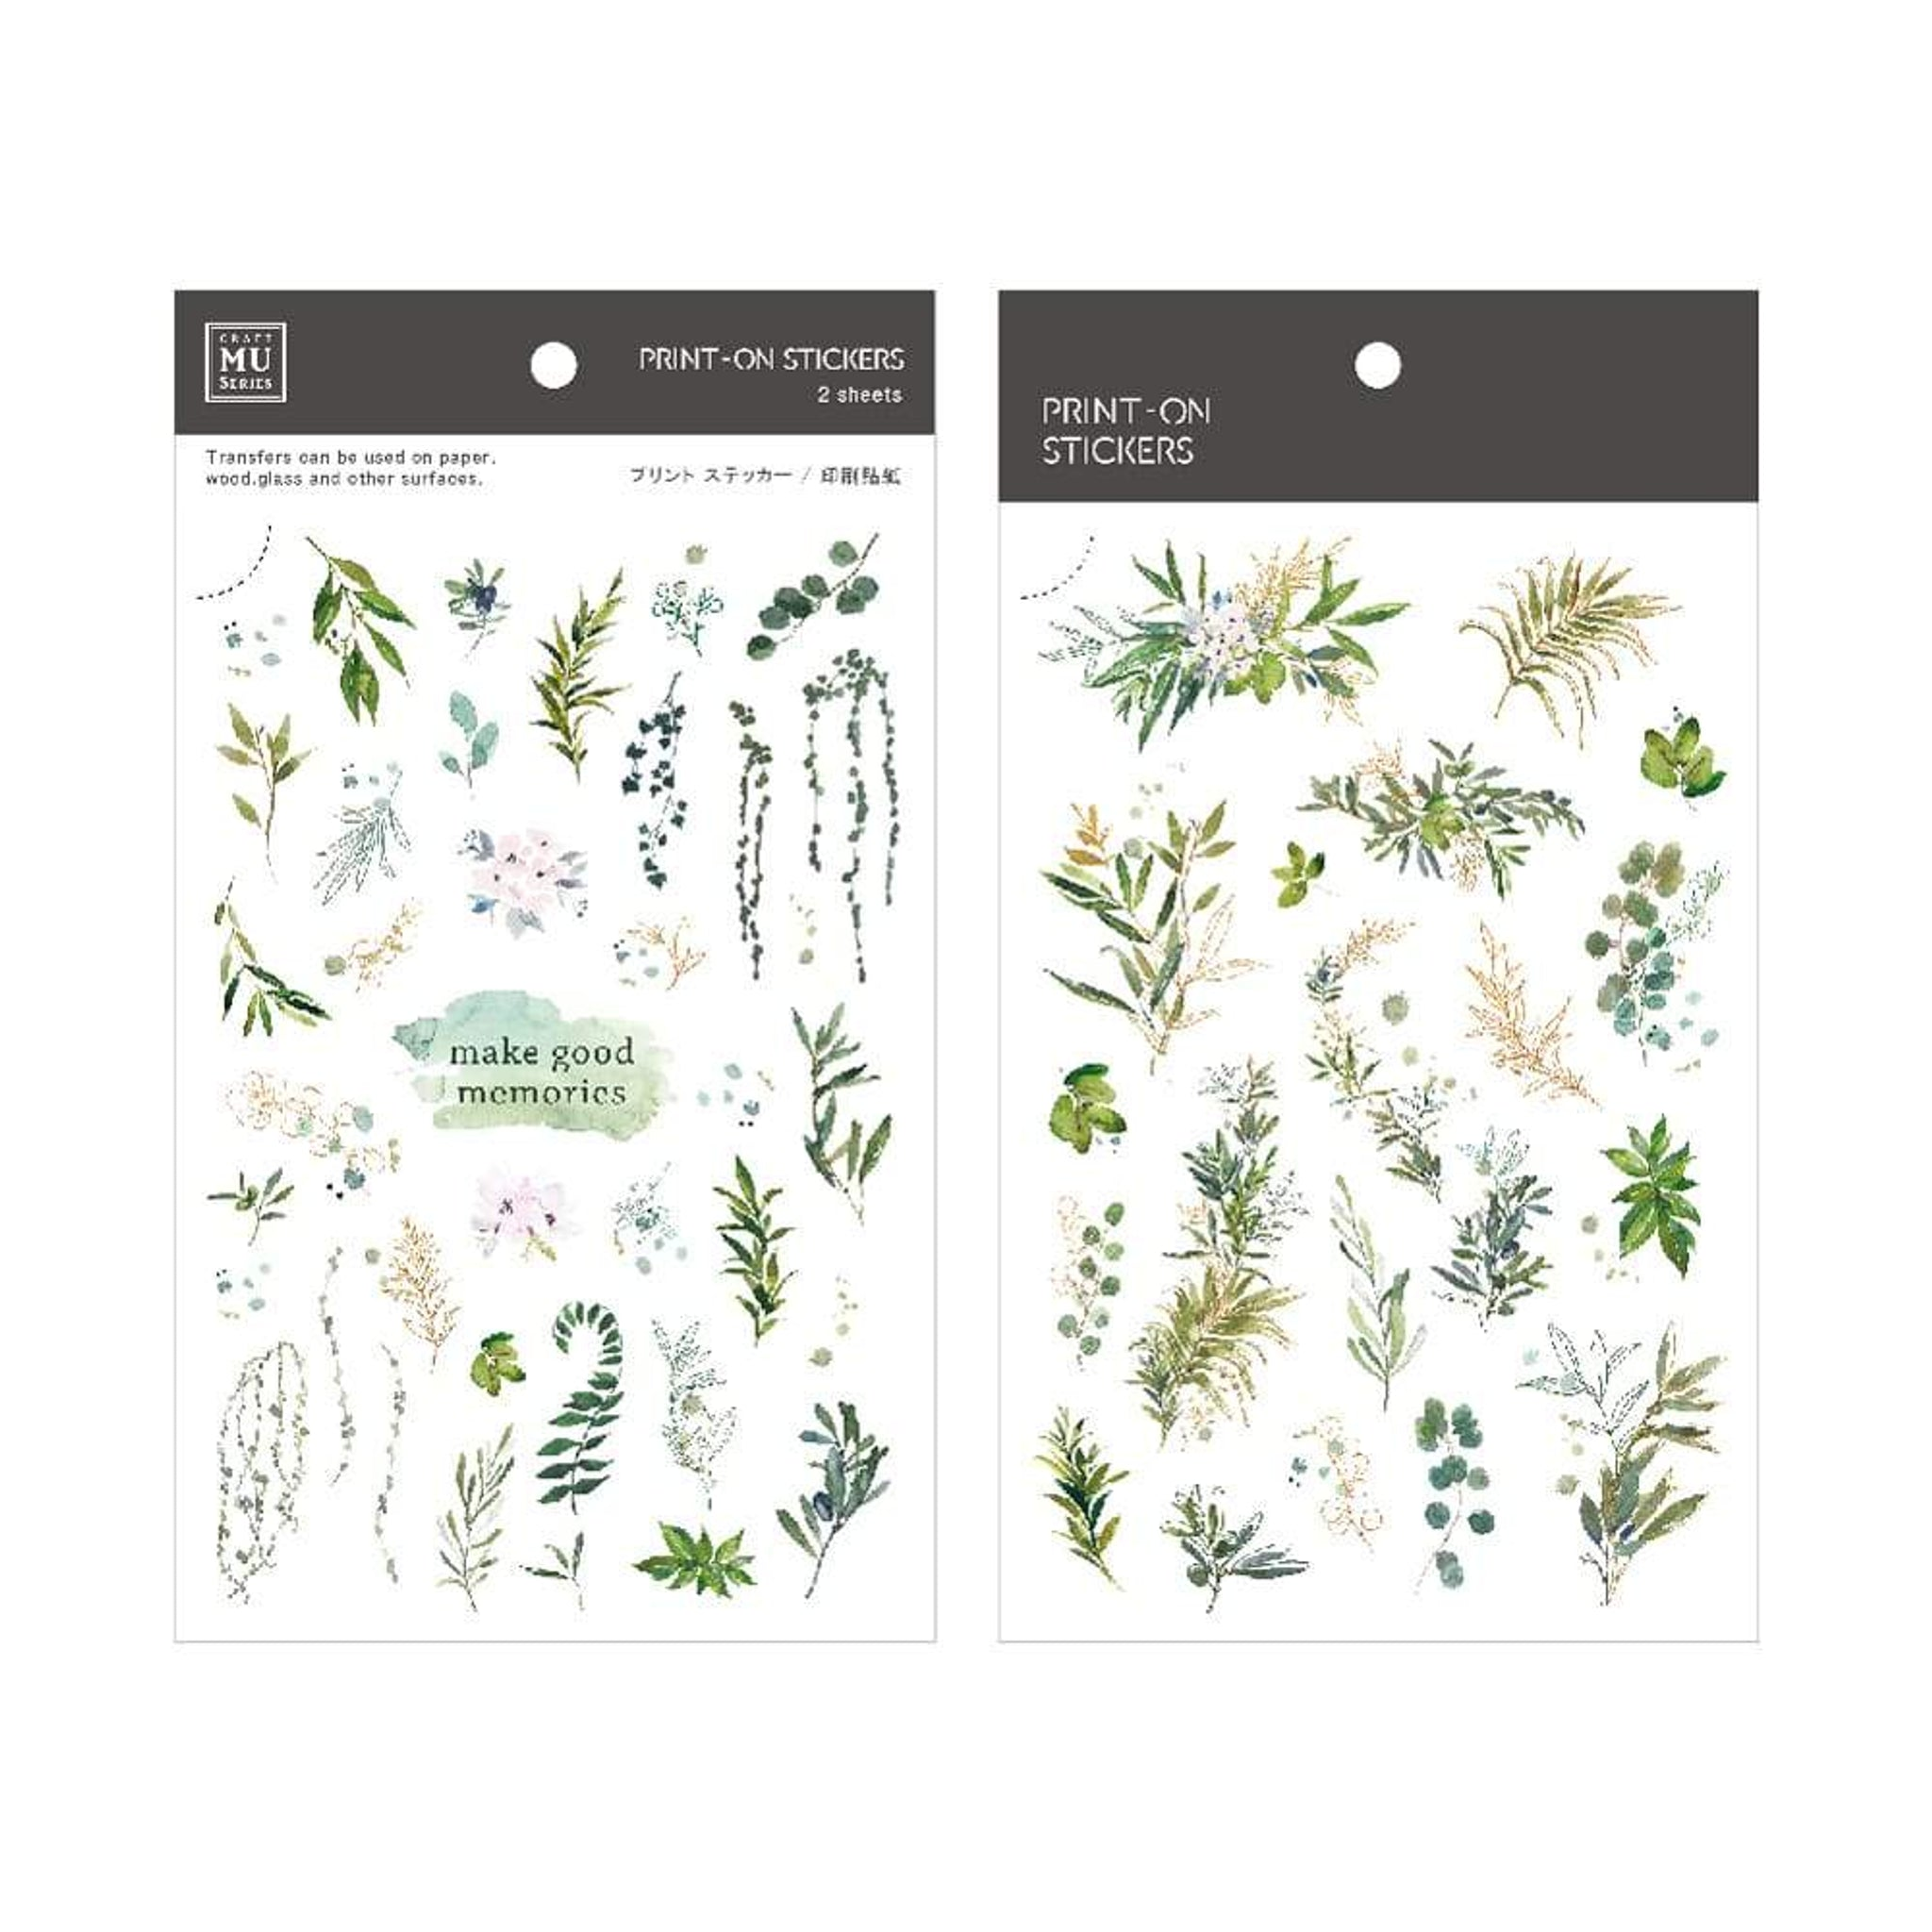 MU Craft Print-On Sticker Ferns & Leaves 105